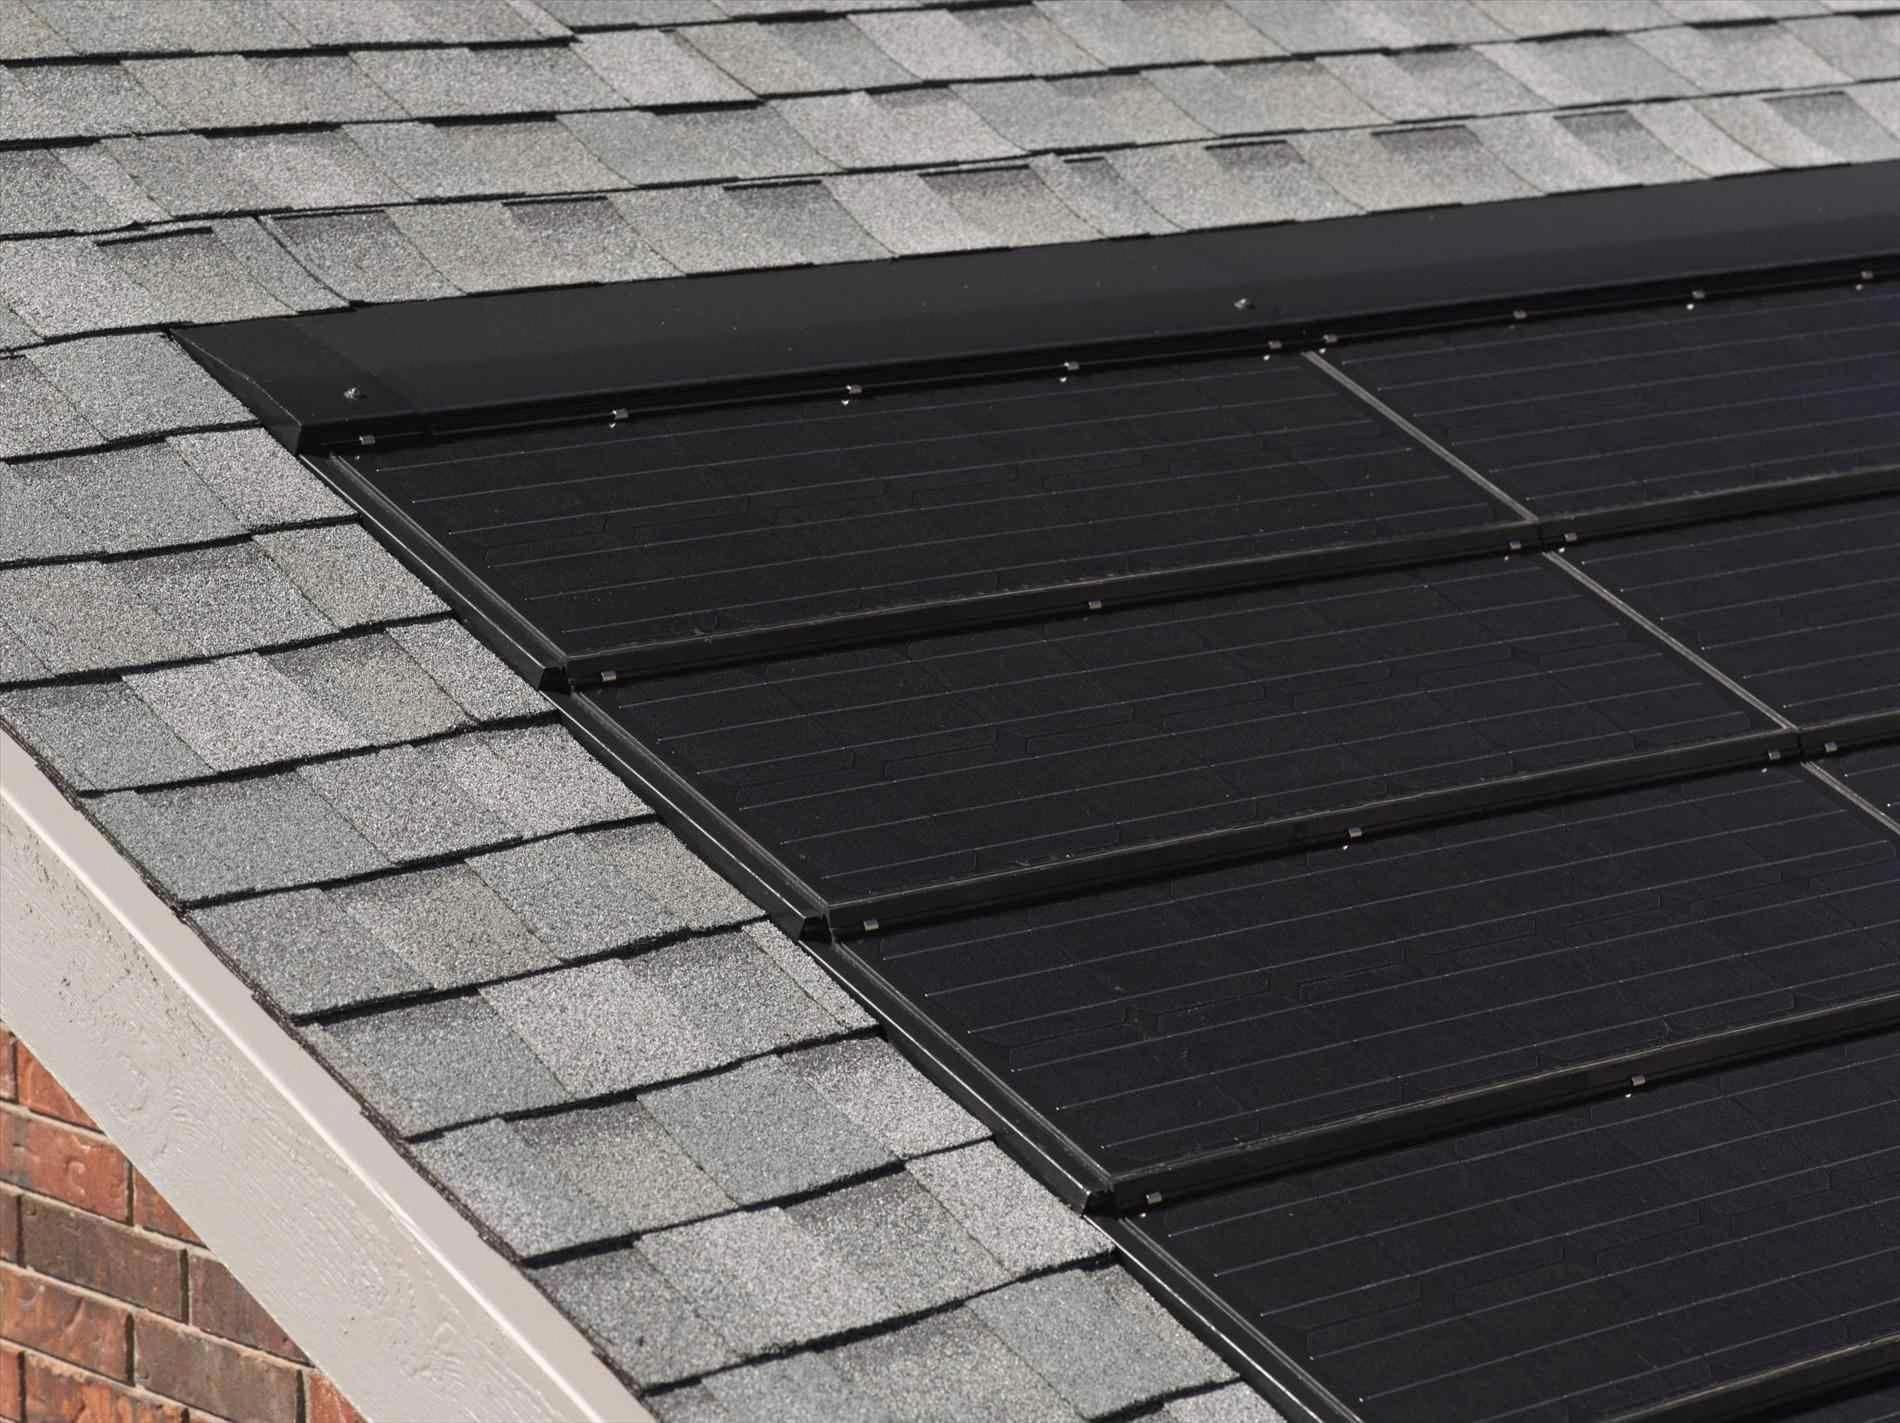 Solar Powered Roof Shingles Roof Integrated With Solar Panels Top Solar Energy Terms Defined Solarpoweredroofshin In 2020 Solar Panels Solar Roof Best Solar Panels